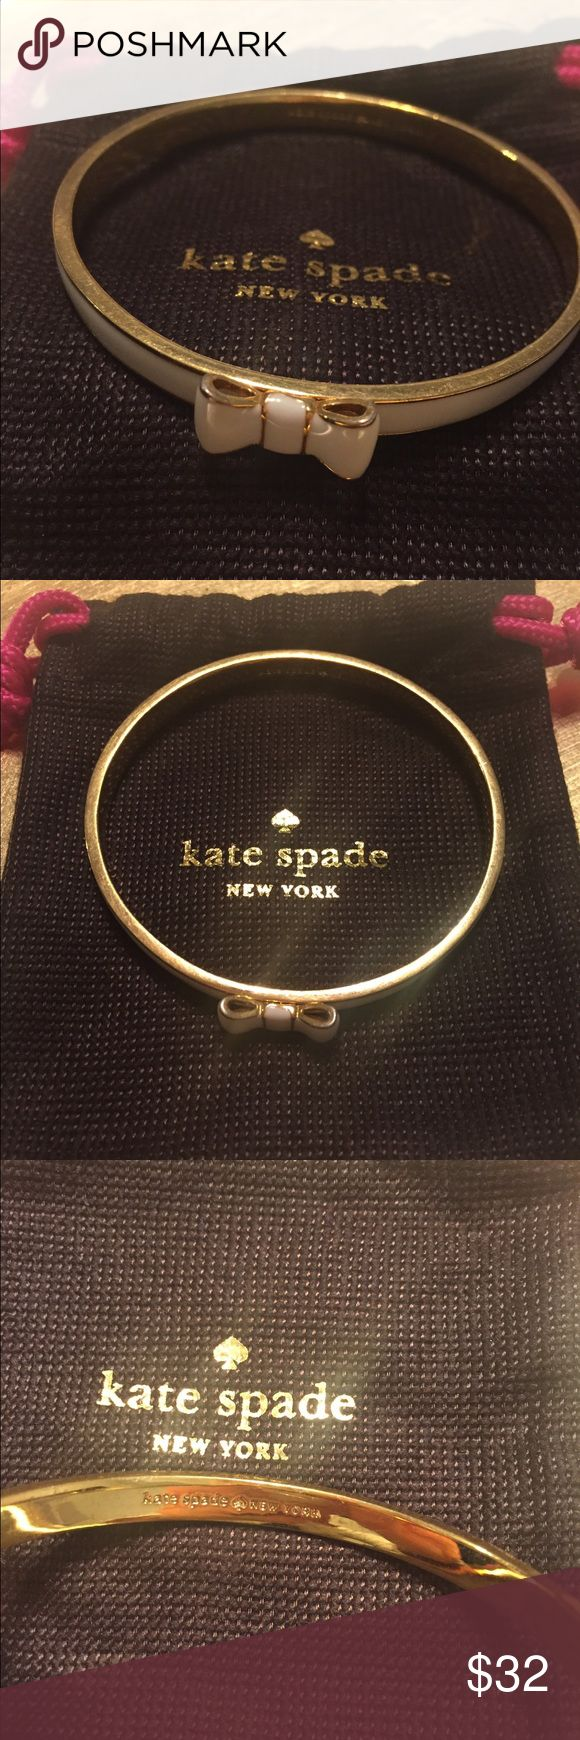 Kate Spade cream bow bangle Like new Kate Spade cream and gold bow bangle. In excellent condition. kate spade Jewelry Bracelets